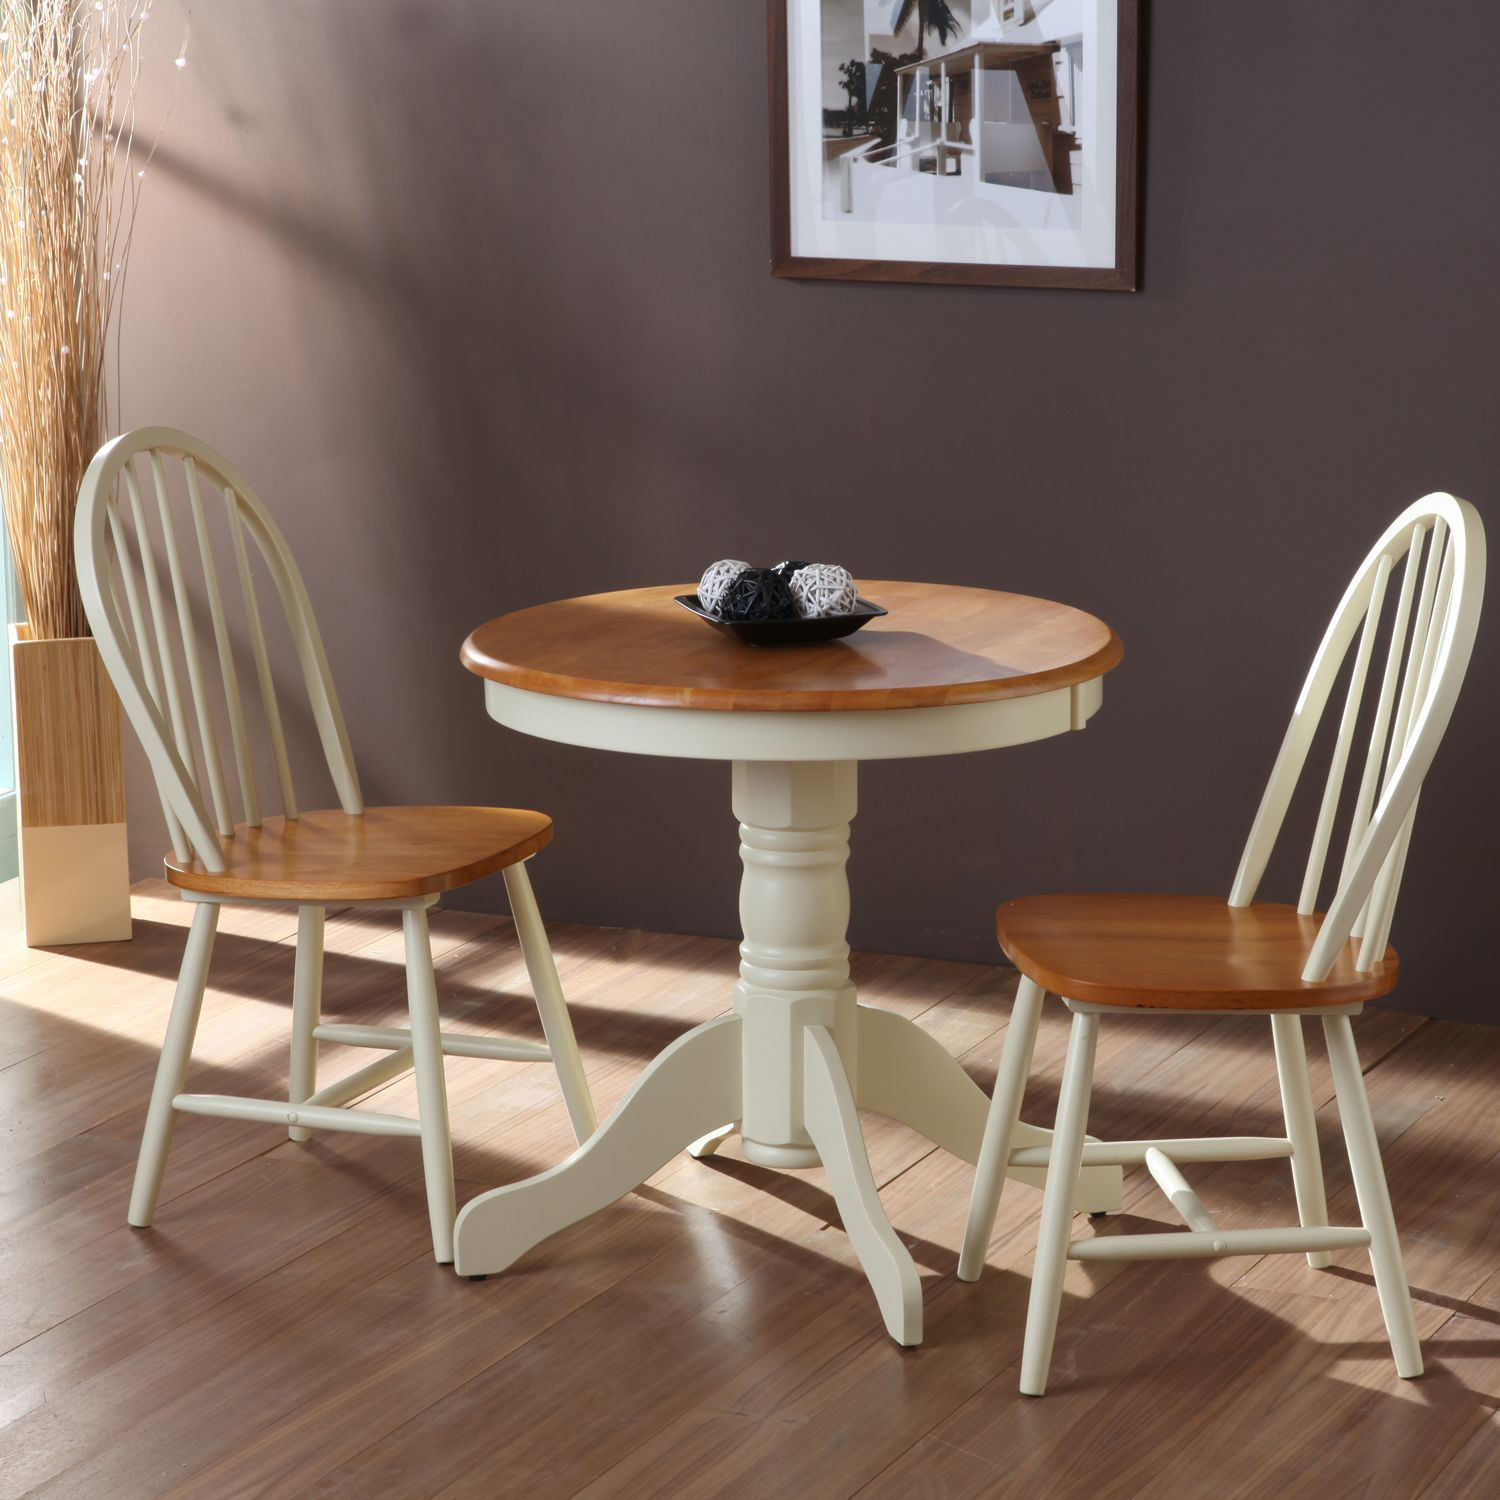 Astonishing White Pedestal Round Dining Table And 2